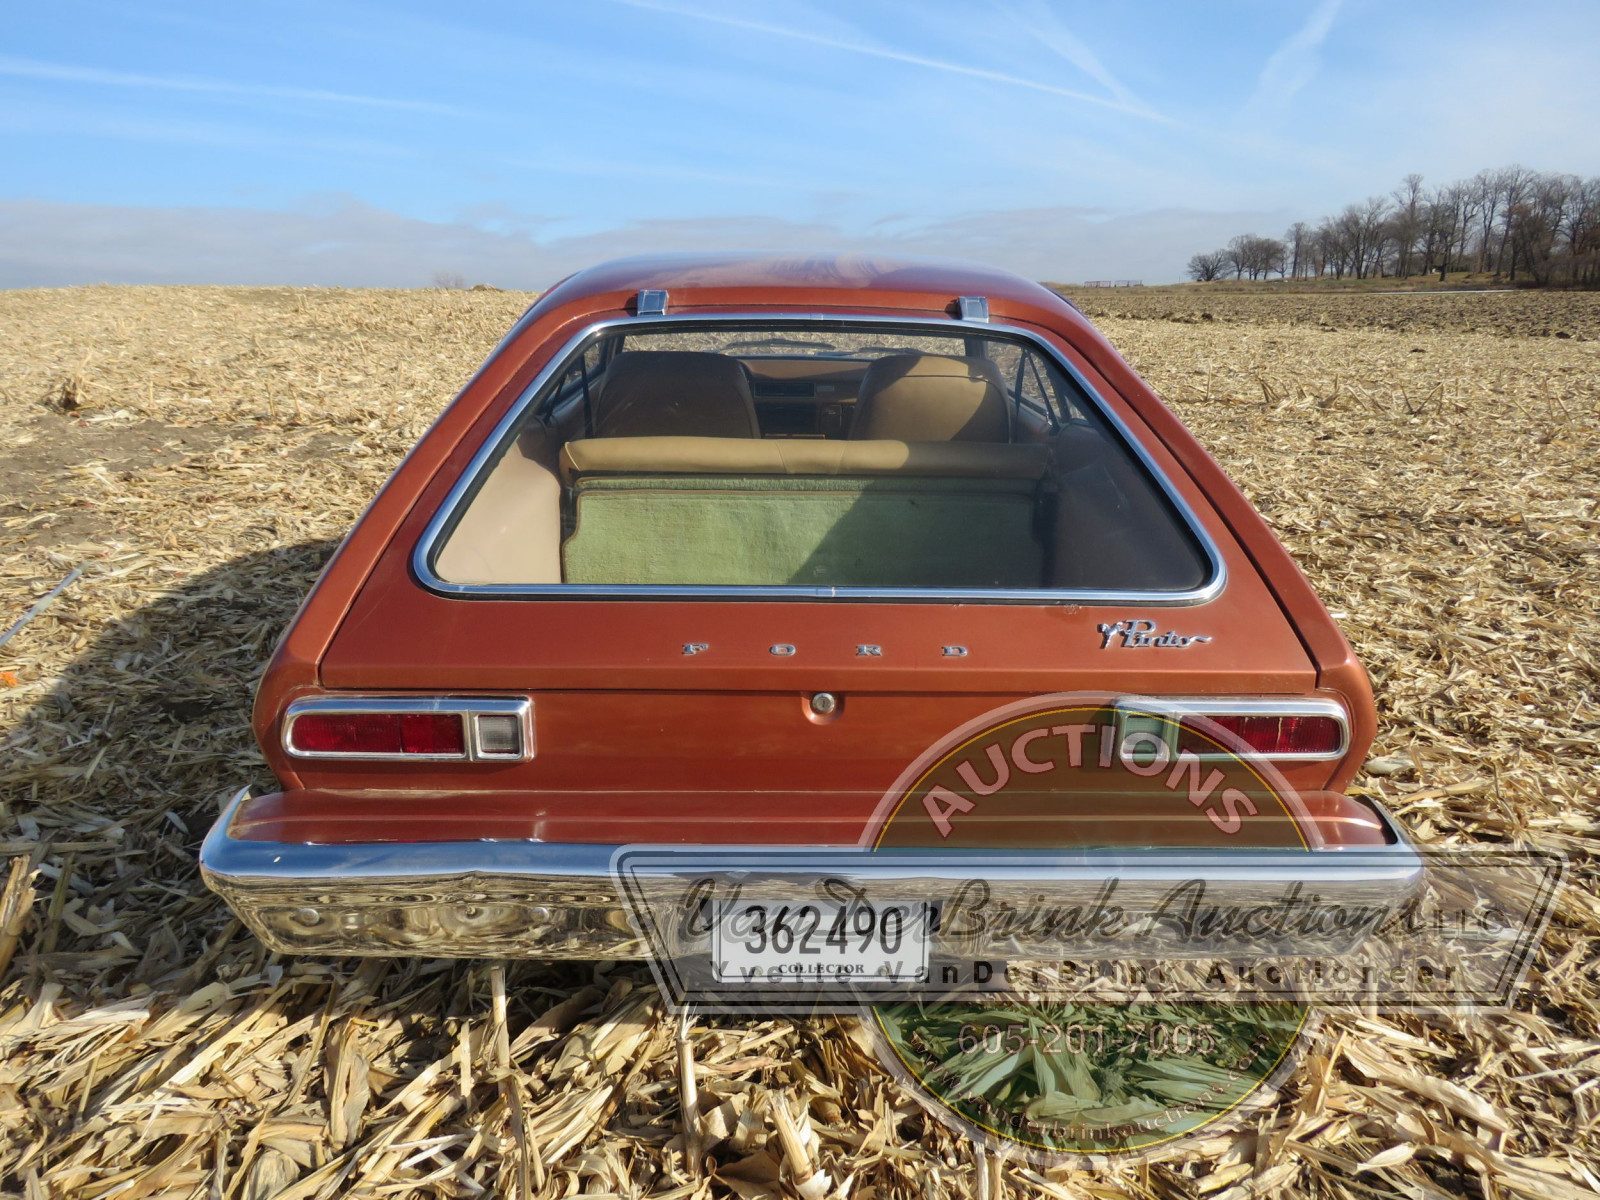 1976 Ford Pinto - Image 6